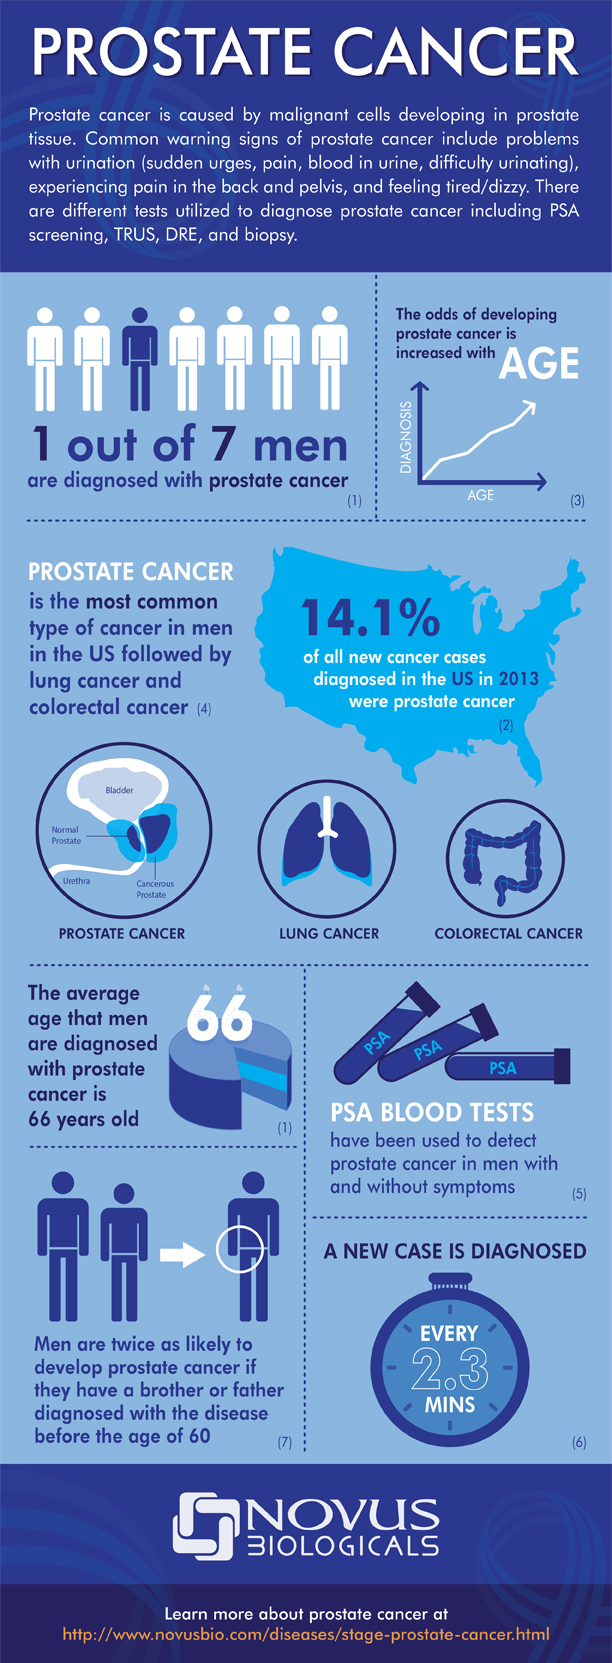 Prostrate Cancer Facts